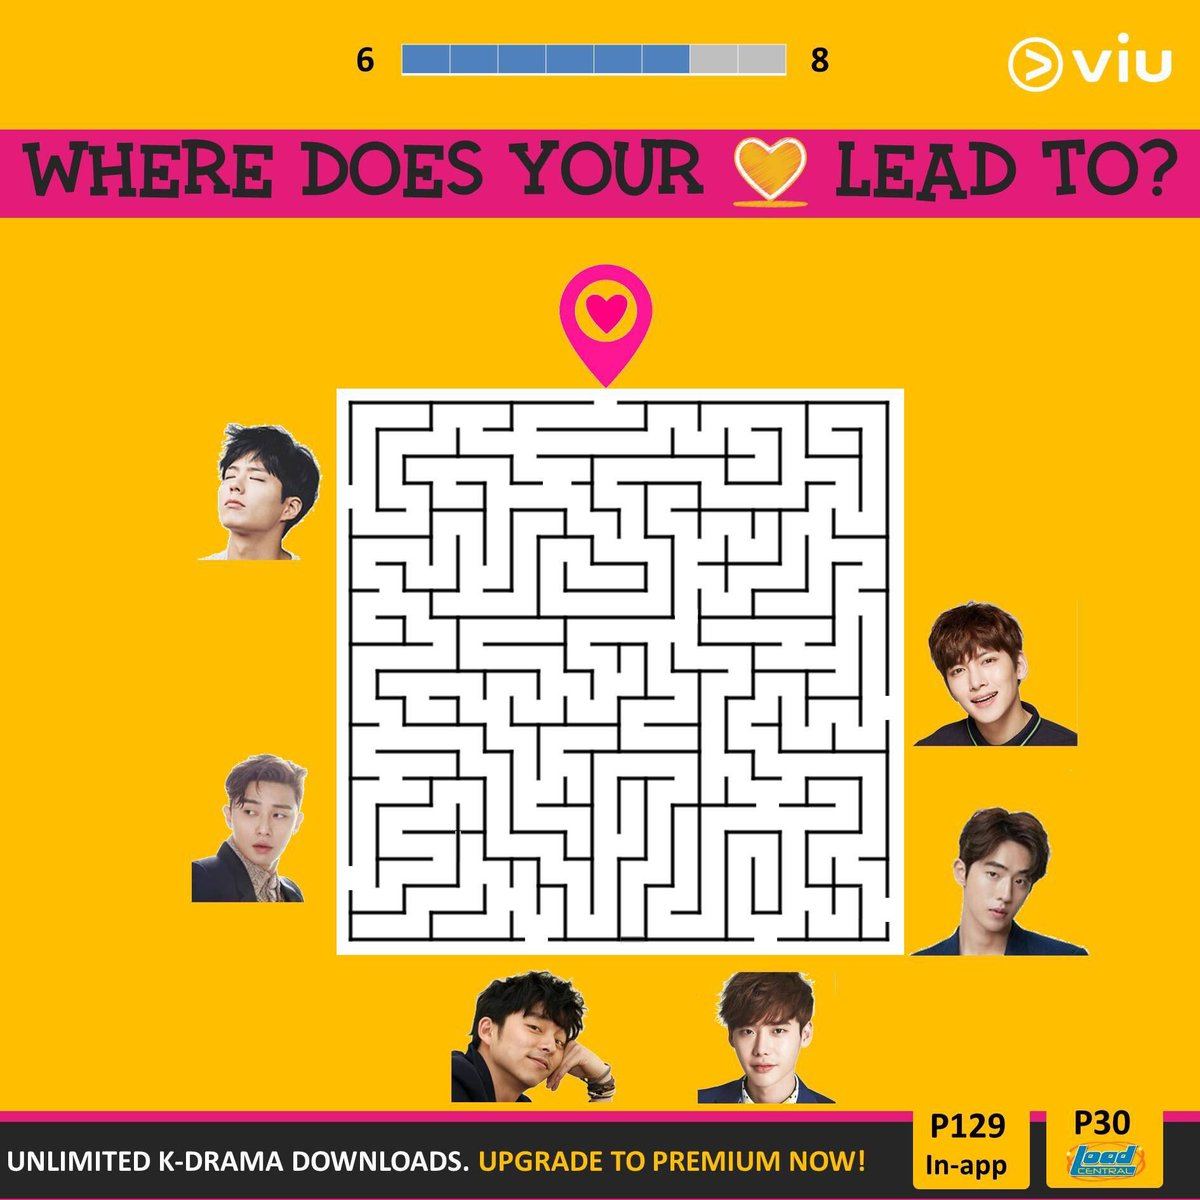 Viu Philippines on Twitter: